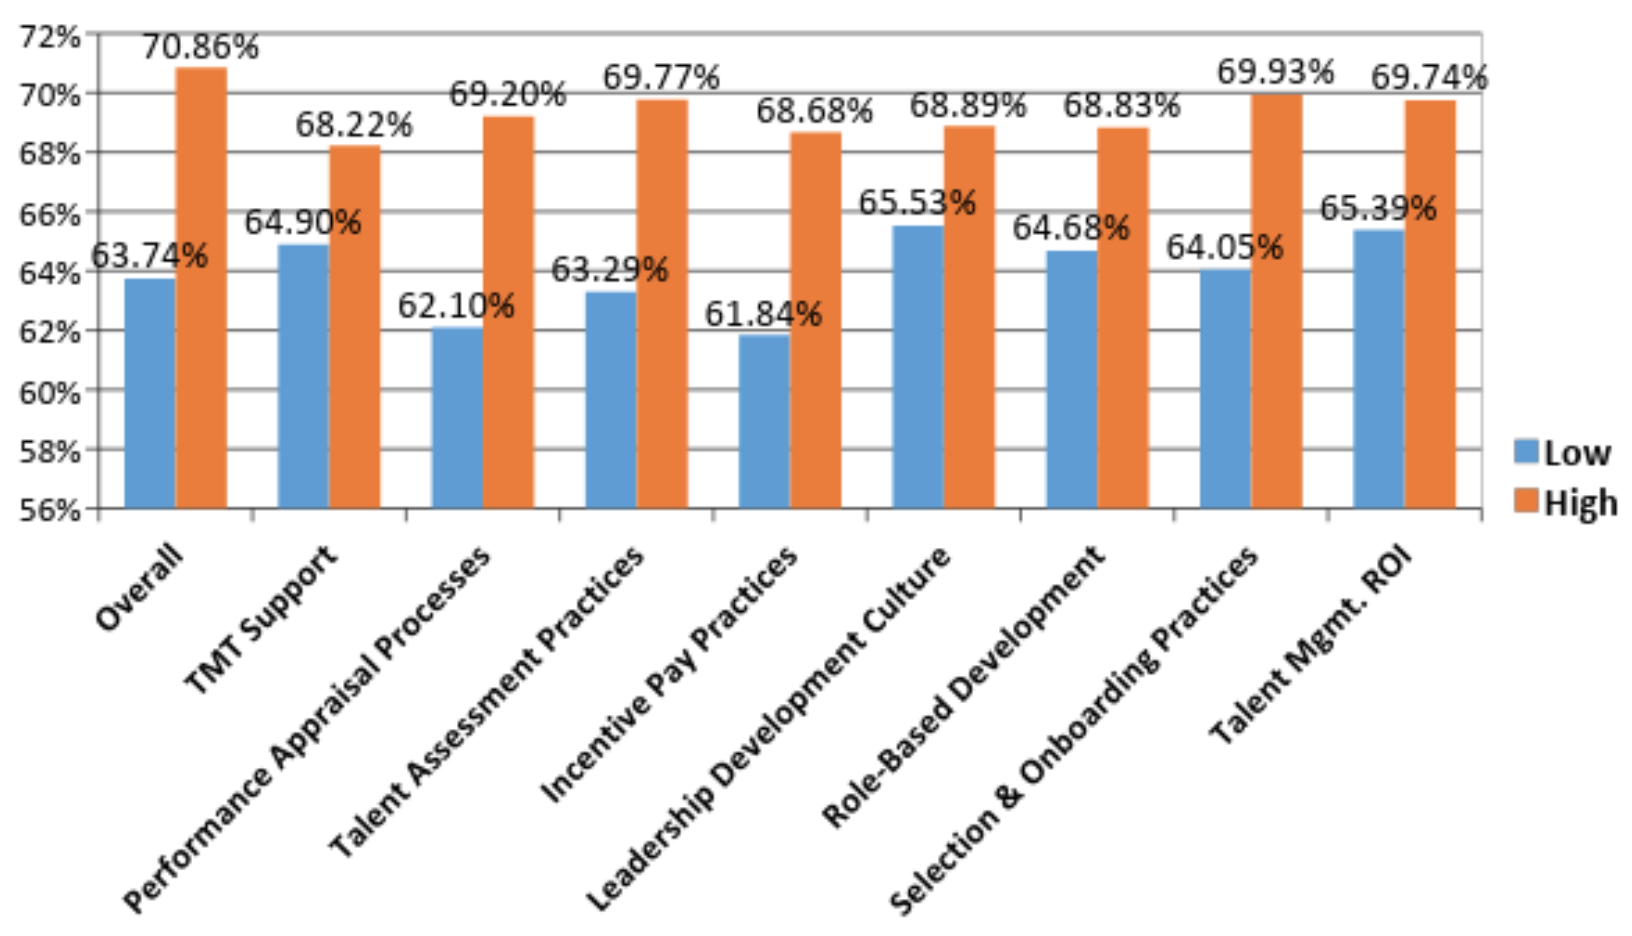 Figure 1 - Note: Hospital organizations that scored at least one standard deviation above the sample mean across each best practice are presented in orange ('High'); hospital organizations that scored at least one standard deviation below the sample mean across each best practice are presented in blue ('Low).